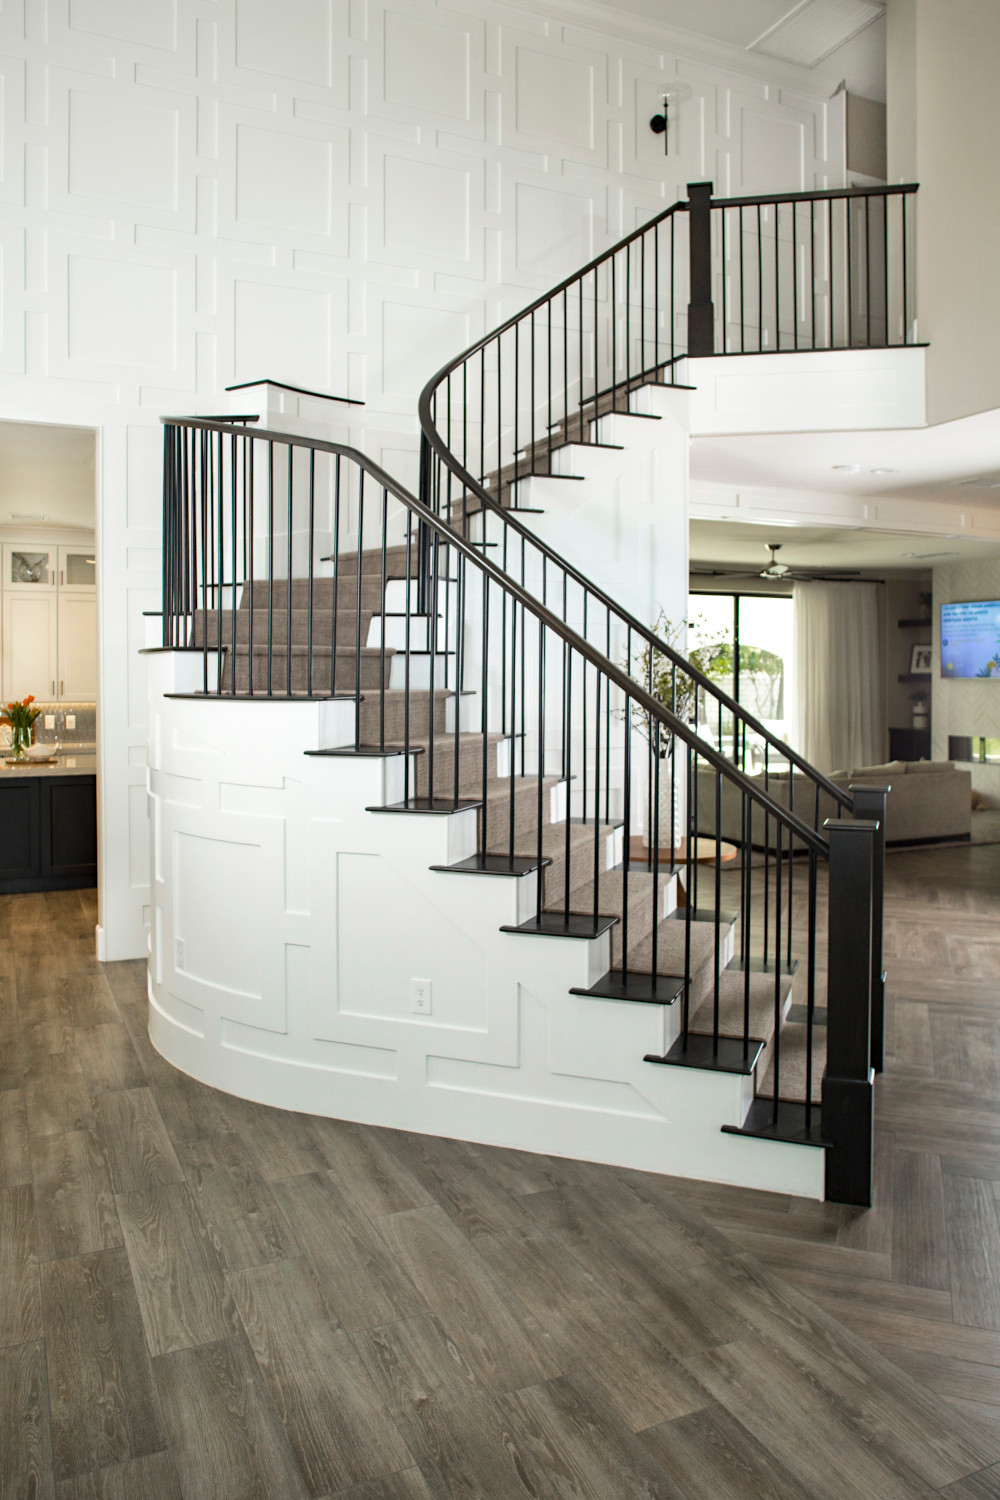 Staircase and wall with white wood panelling, dark wood railing and dark wood stair steps.